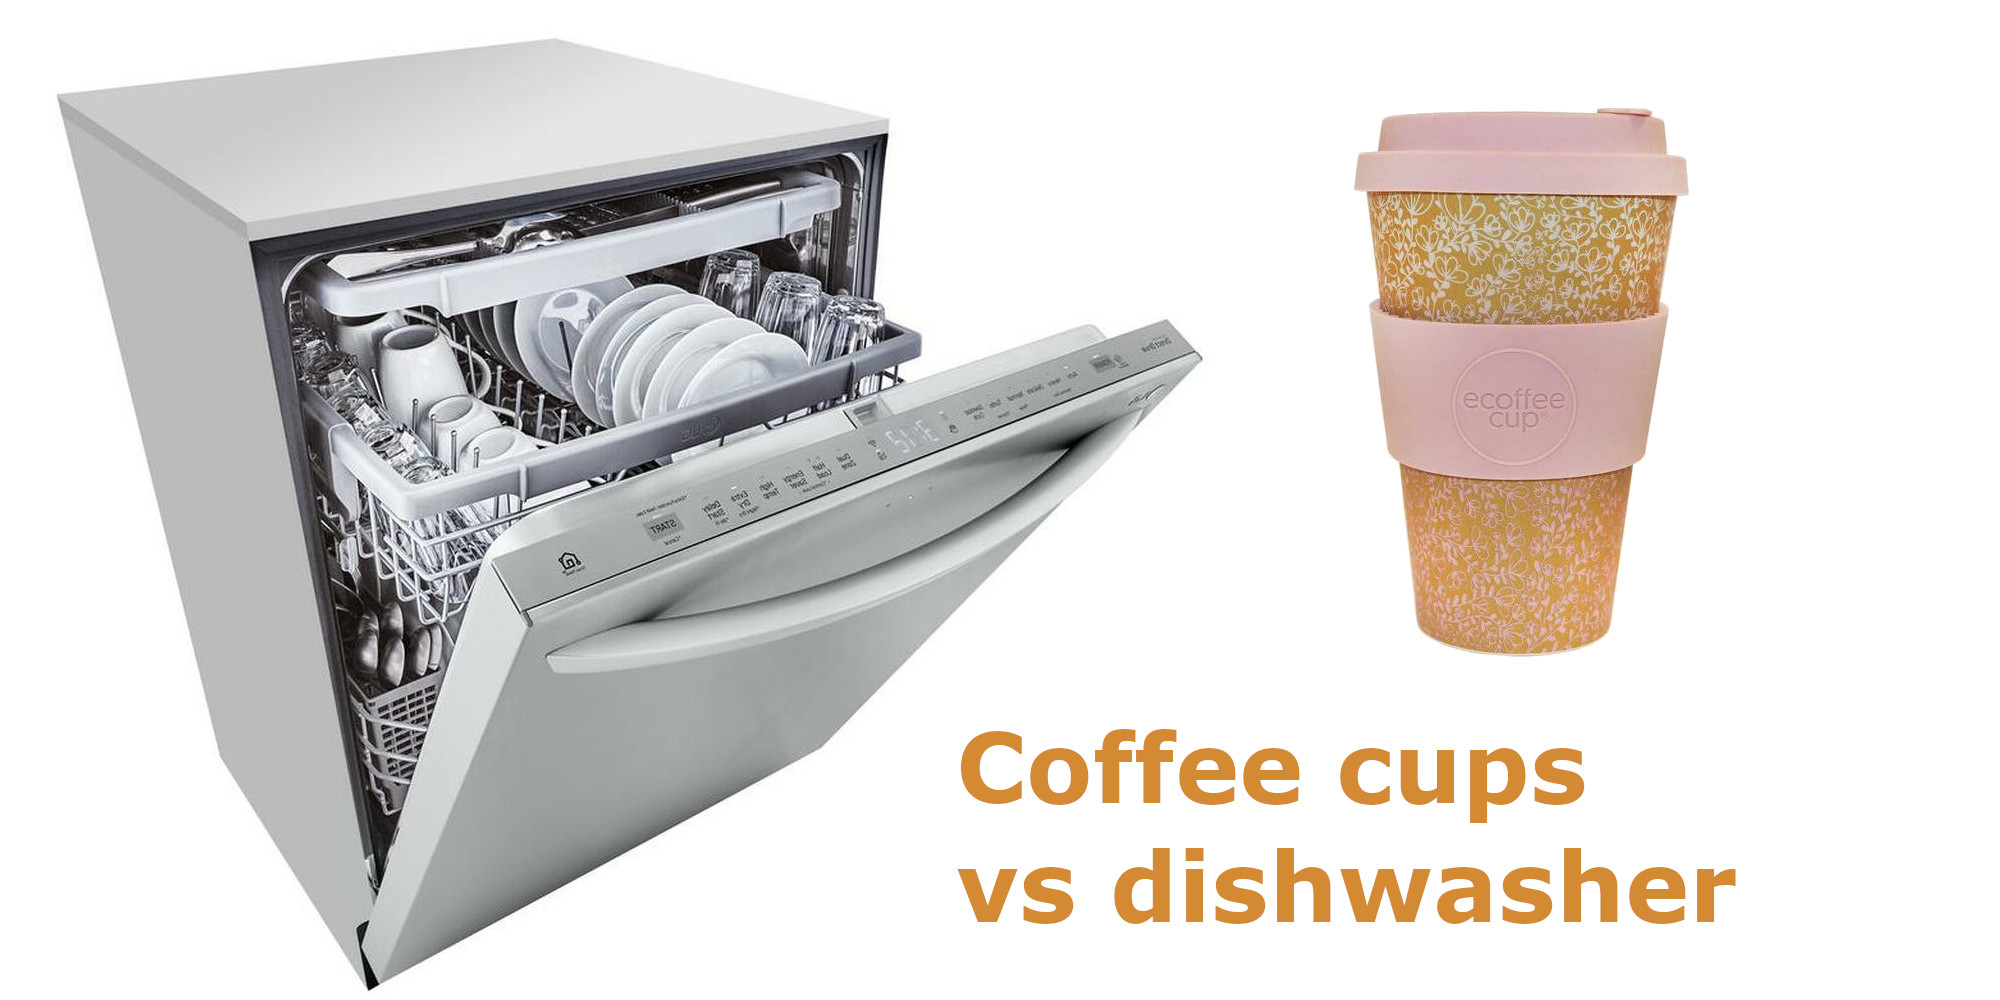 List of coffee cups that you could wash in dishwasher